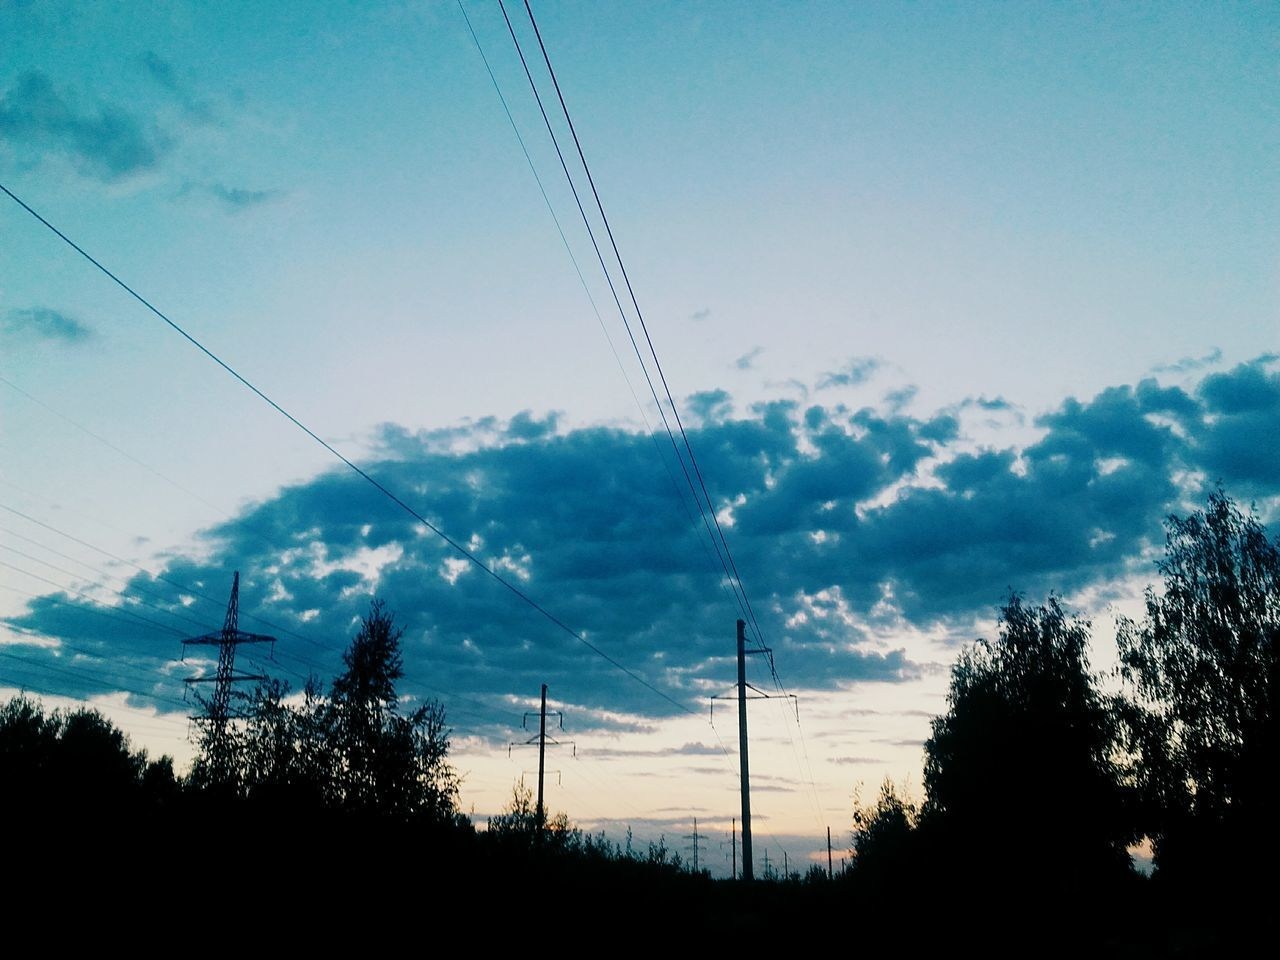 cable, power line, electricity pylon, electricity, power supply, fuel and power generation, connection, sky, silhouette, tree, low angle view, technology, electricity tower, cloud - sky, no people, nature, day, telephone line, outdoors, beauty in nature, vapor trail